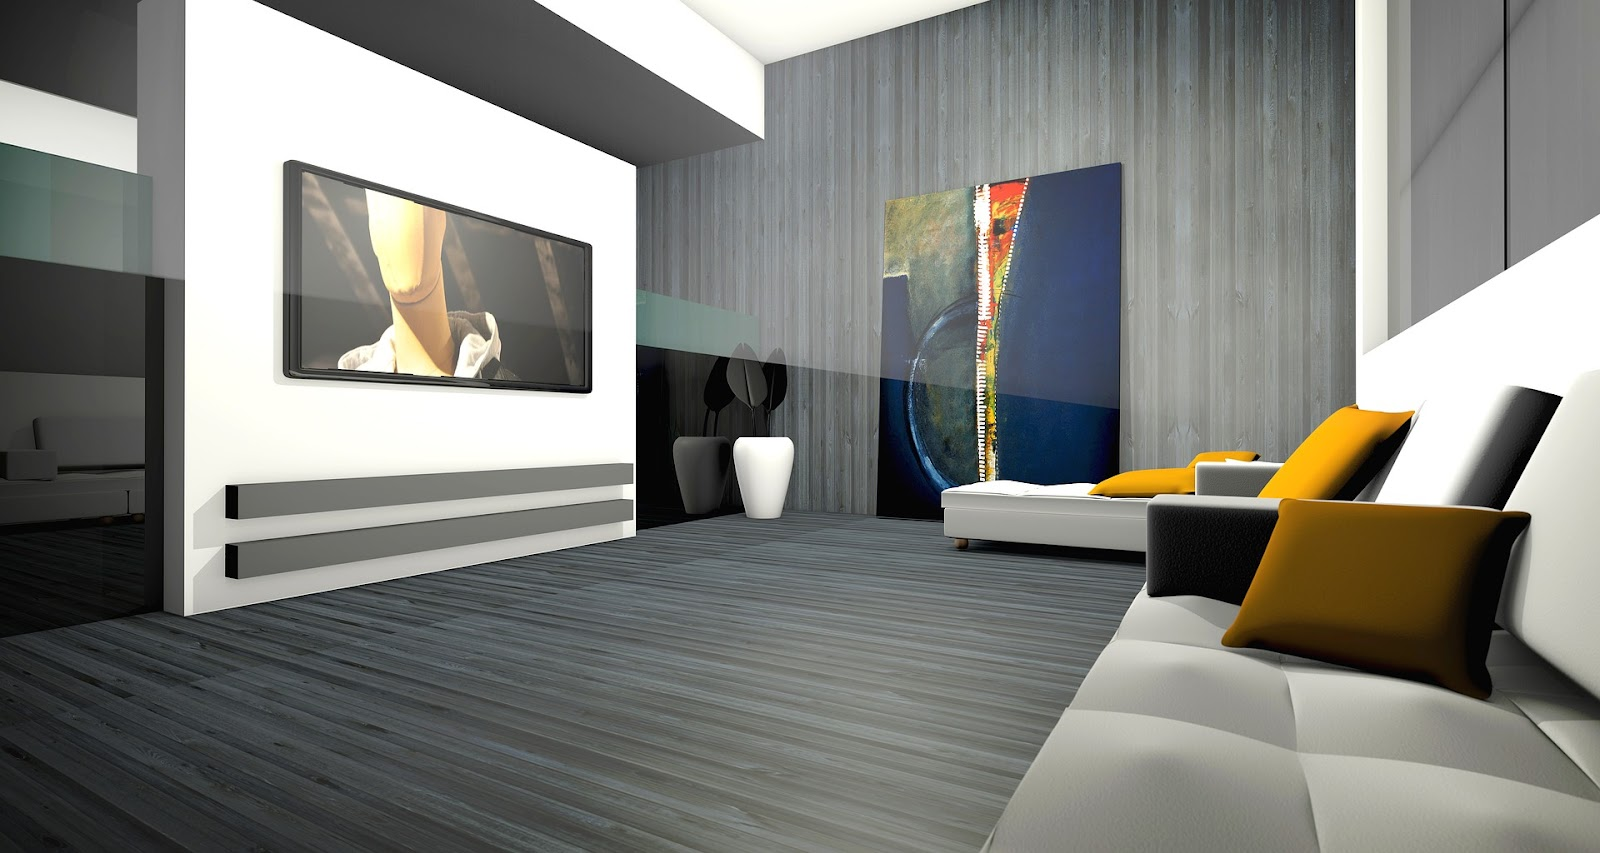 3D design of a living room. Couch with pillows facing a tv mounted on a wall